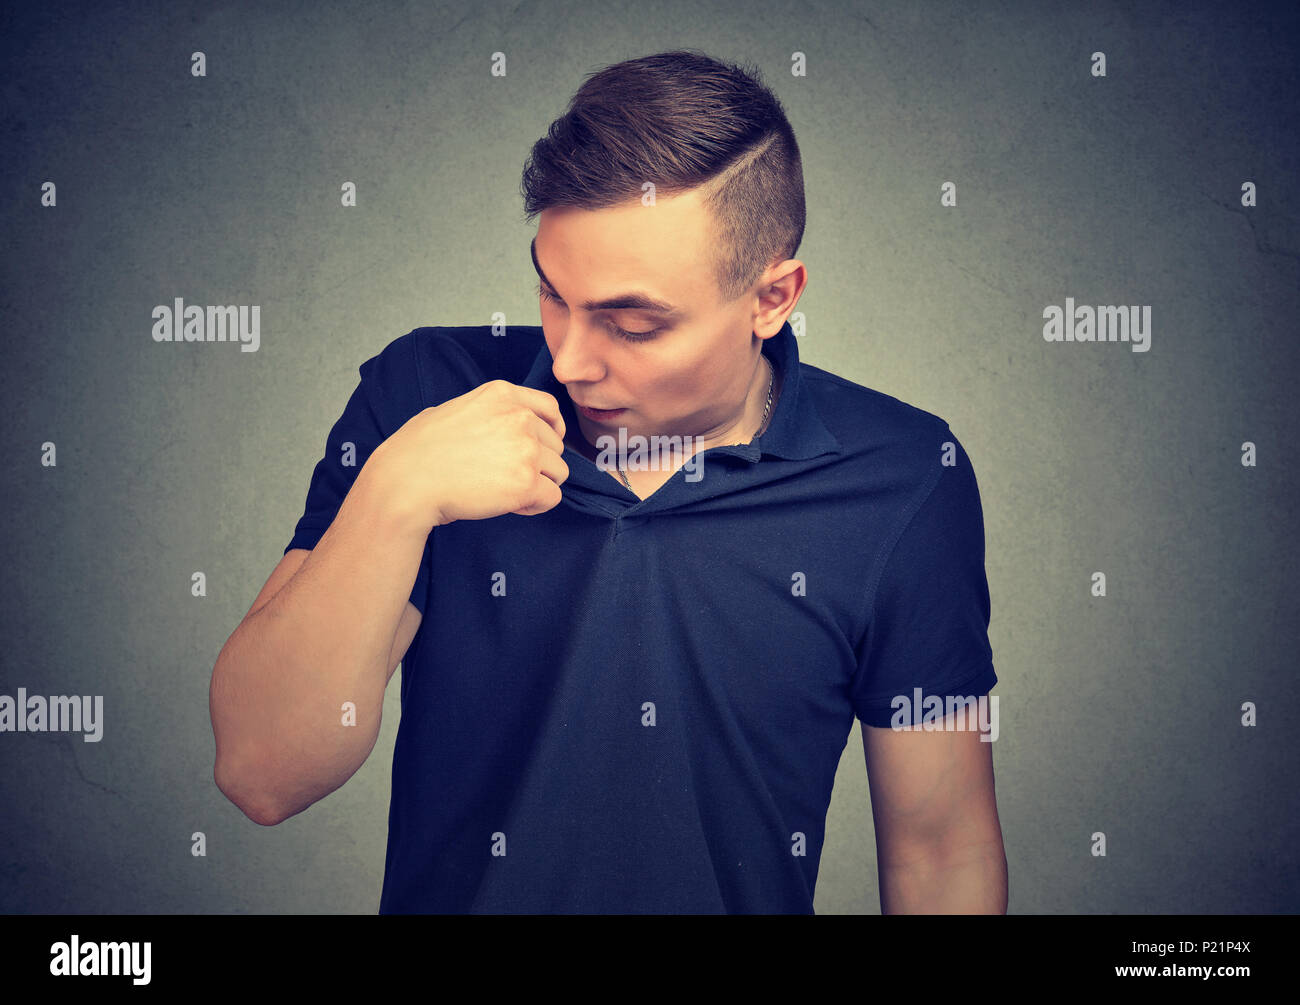 Man in awkward situation opening shirt to vent isolated on gray background. Human emotions facial expression, feelings - Stock Image